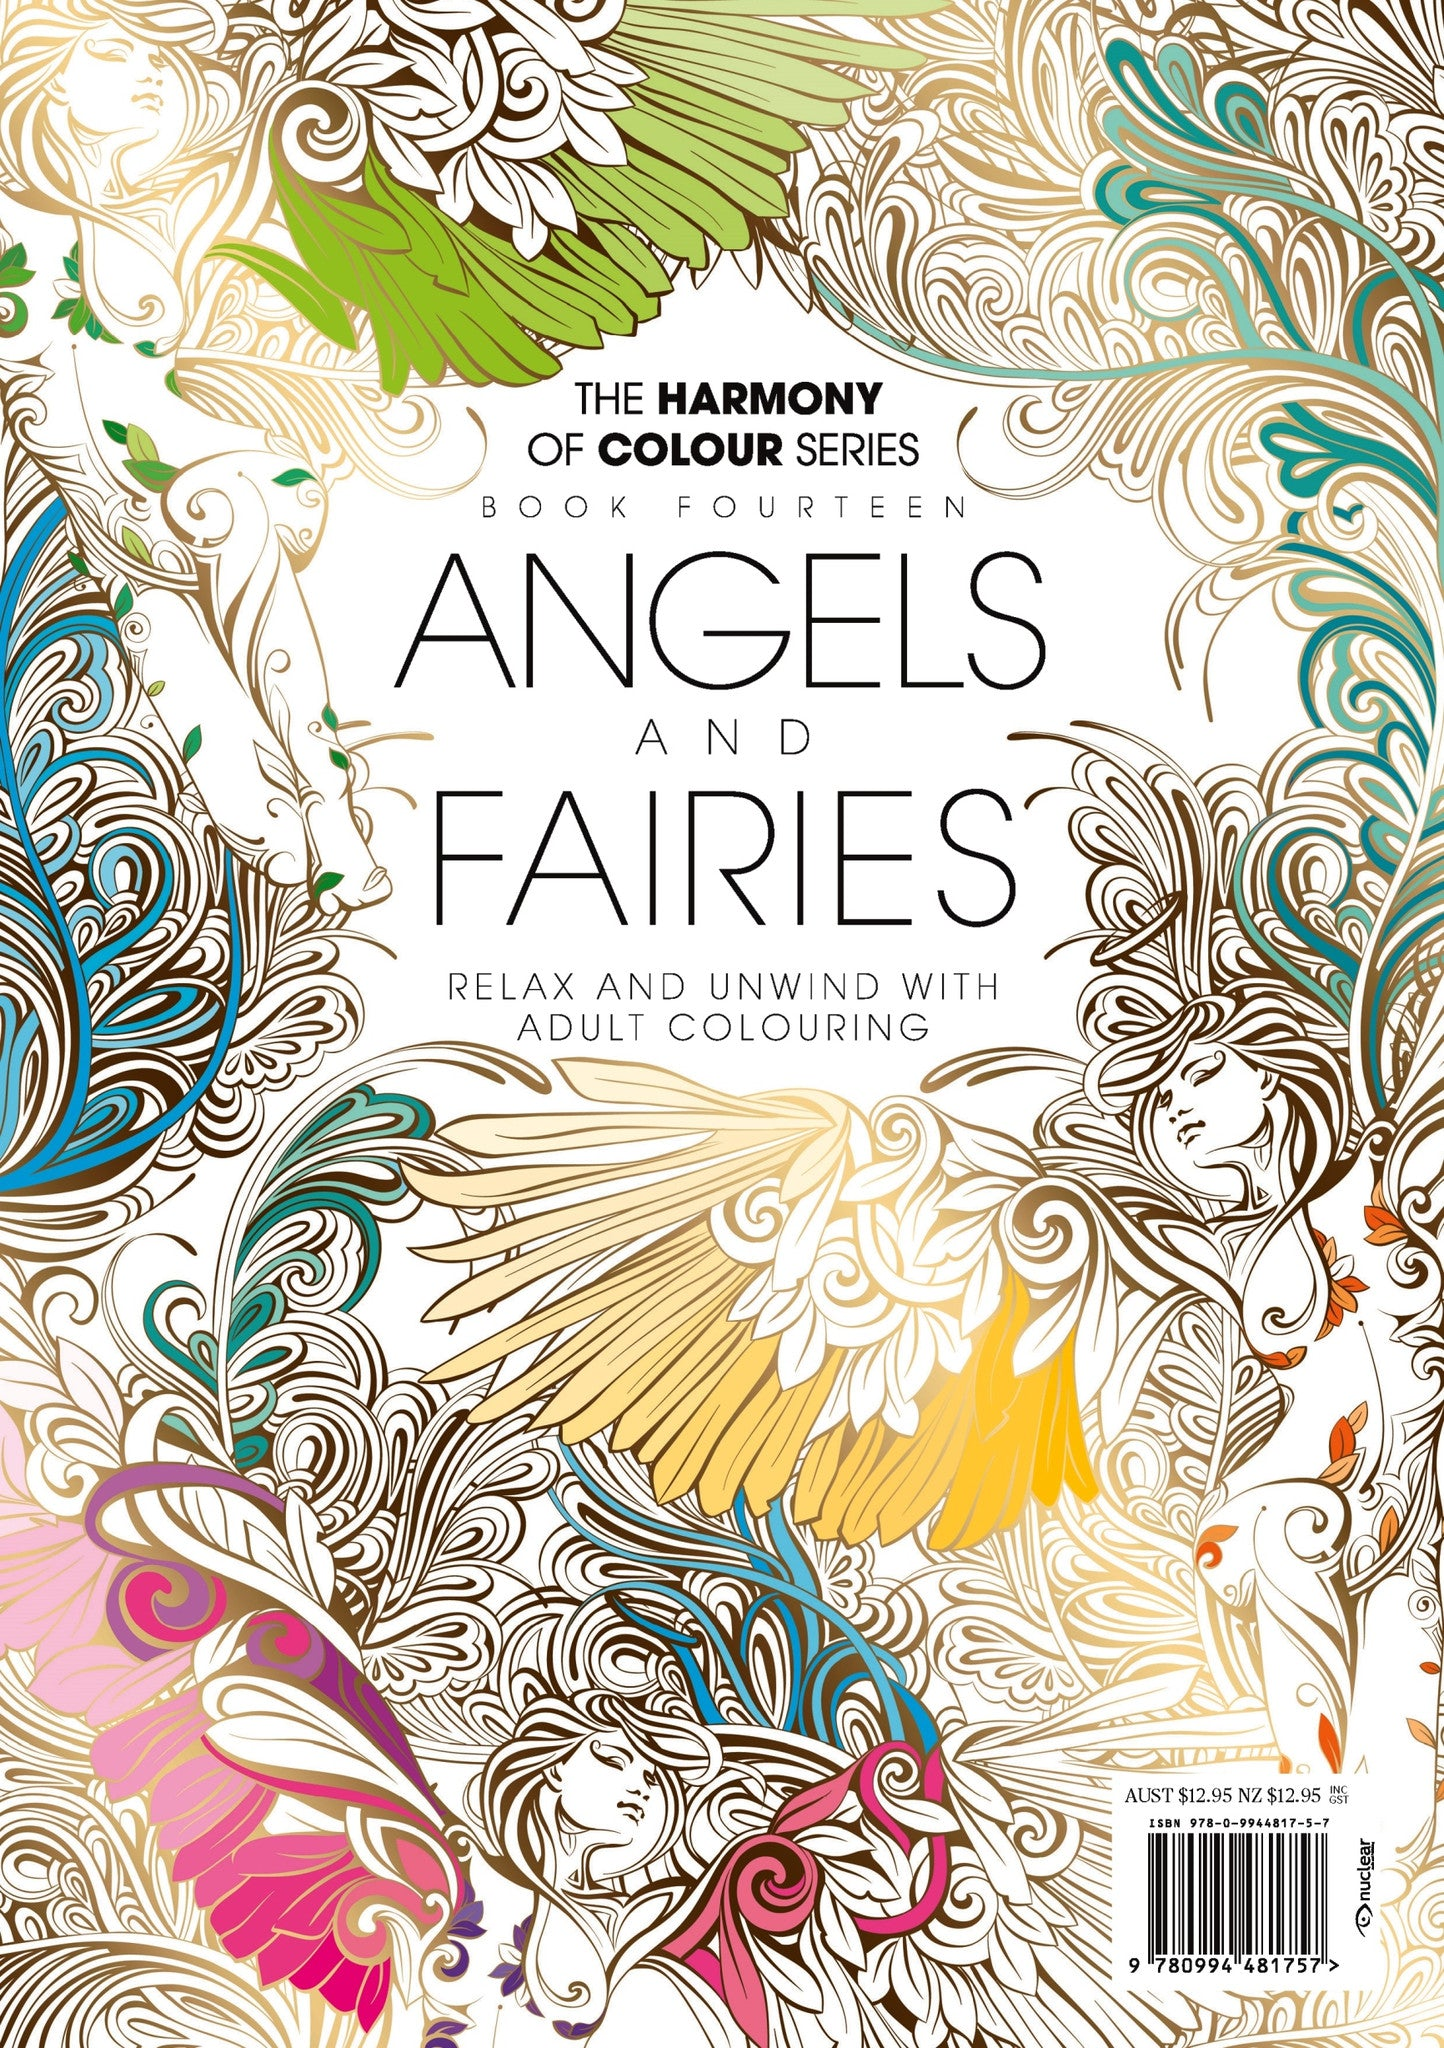 Harmony Of Colour Book Fourteen Angels And Fairies PRINT EDITION SOLD OUT